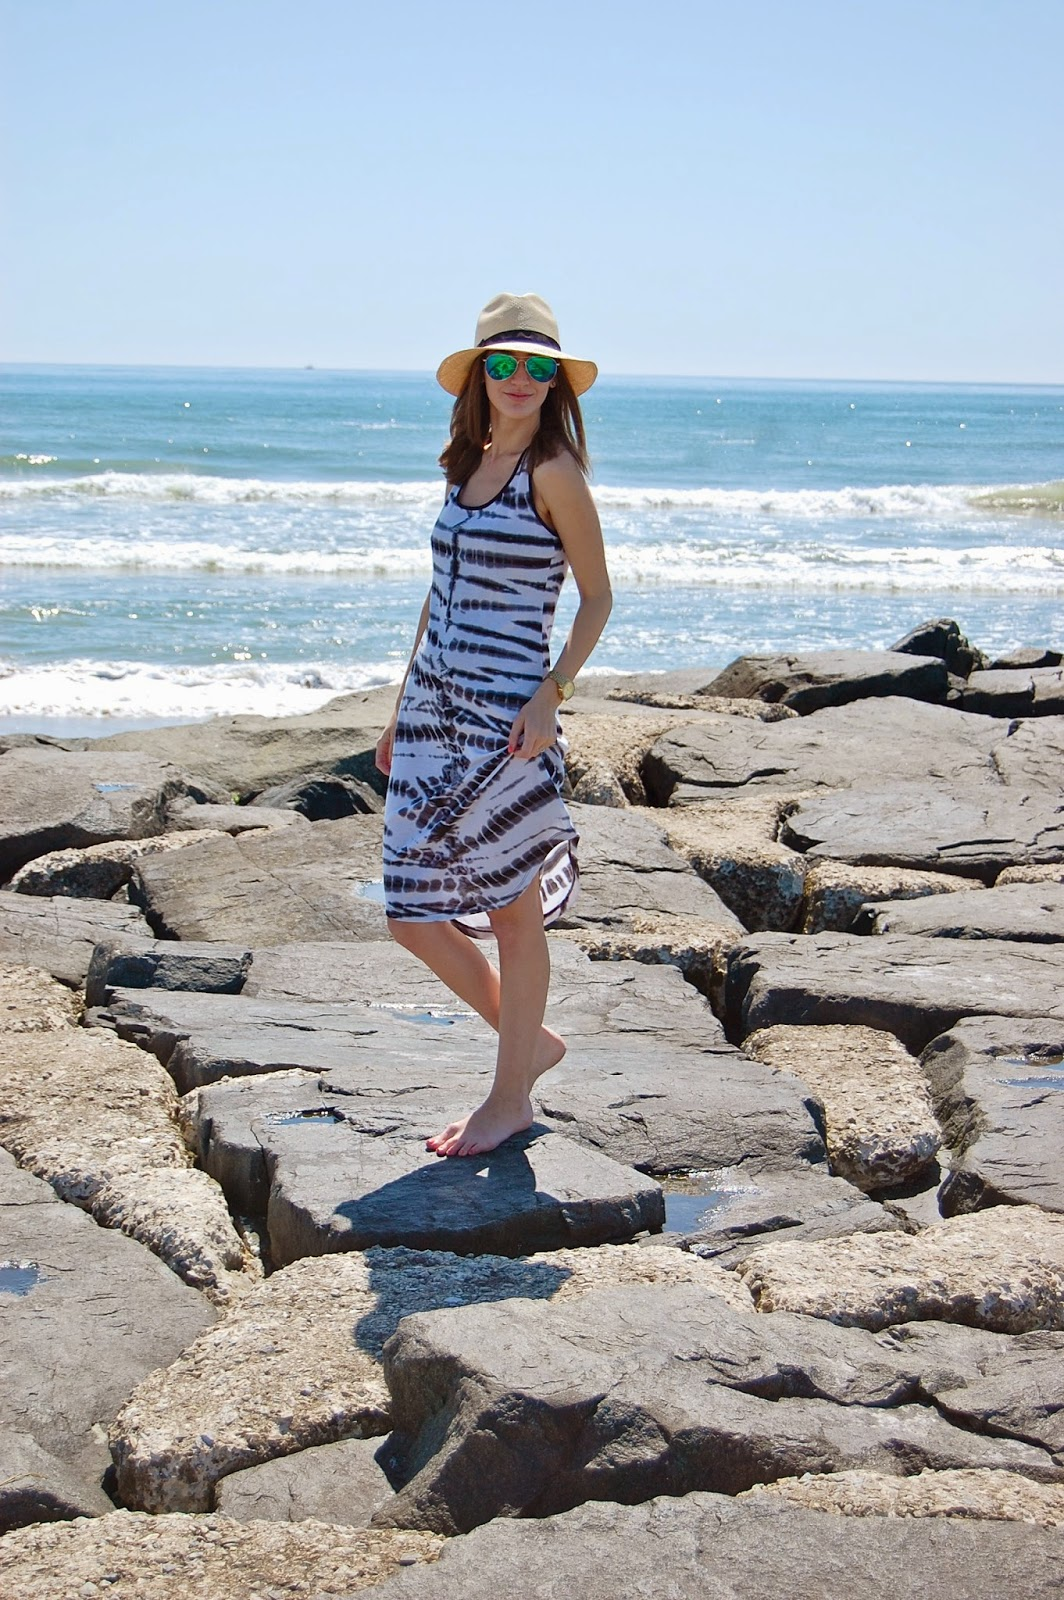 Wearing black and white Target Mossimo coverup dress, J.Crew Panama Hat, Mirrored Sunglasses, Beach Looks 2014